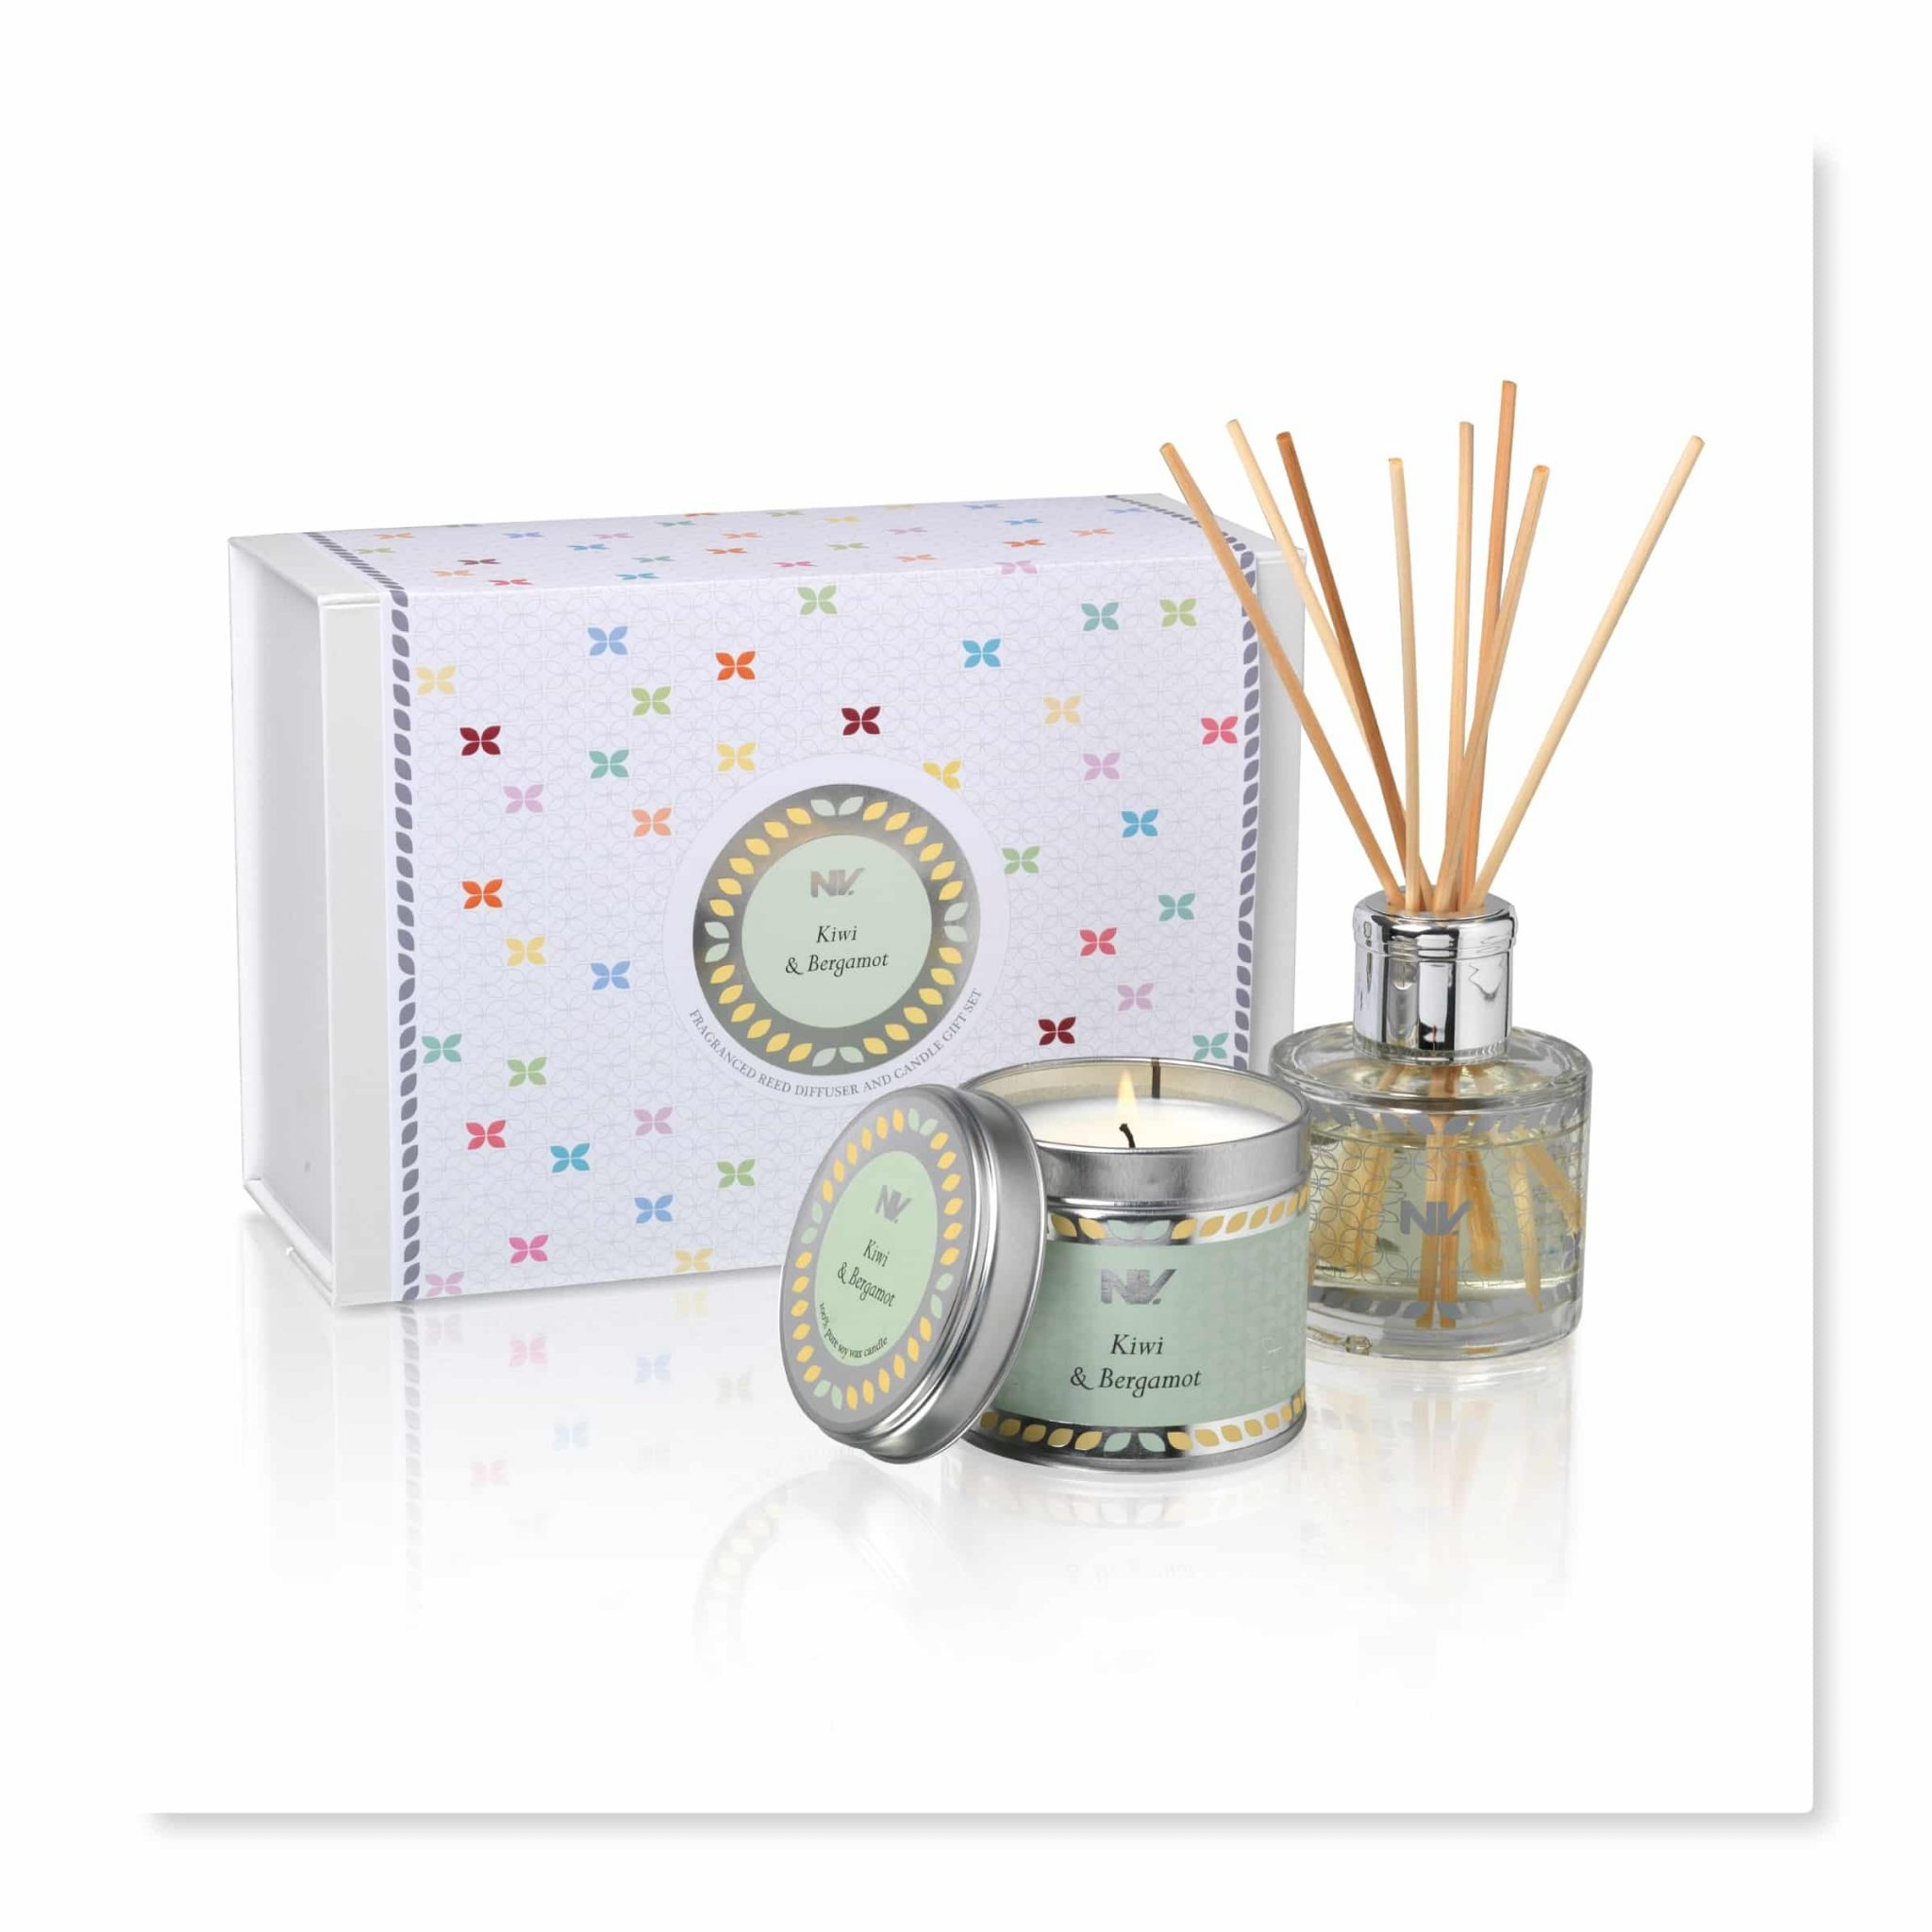 candle gift set, gifts for her, gift ideas,